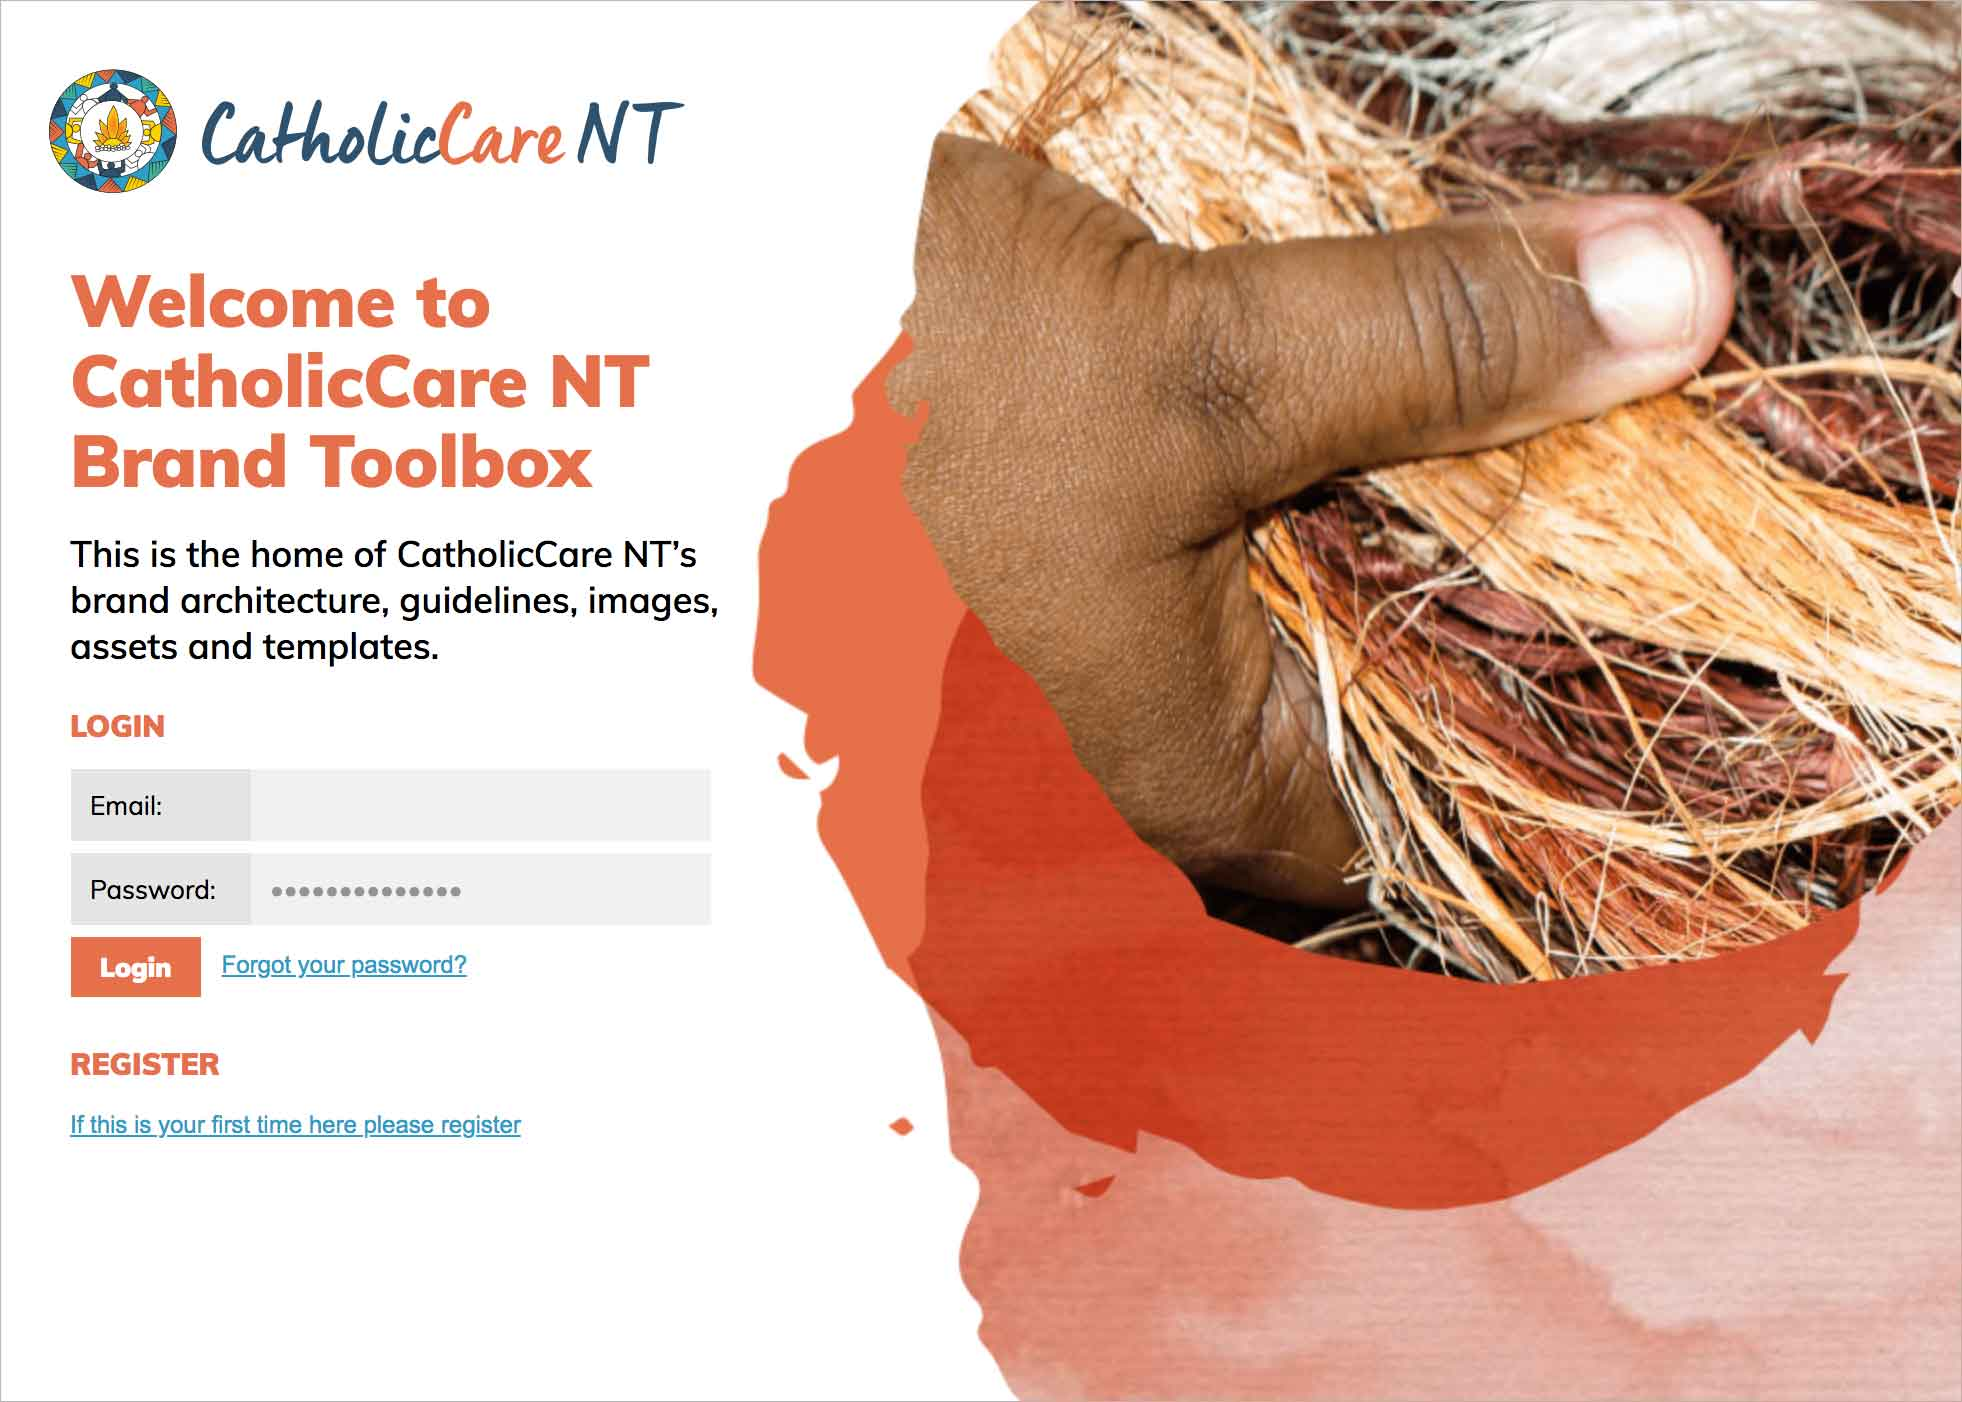 CatholicCare NT Login screen